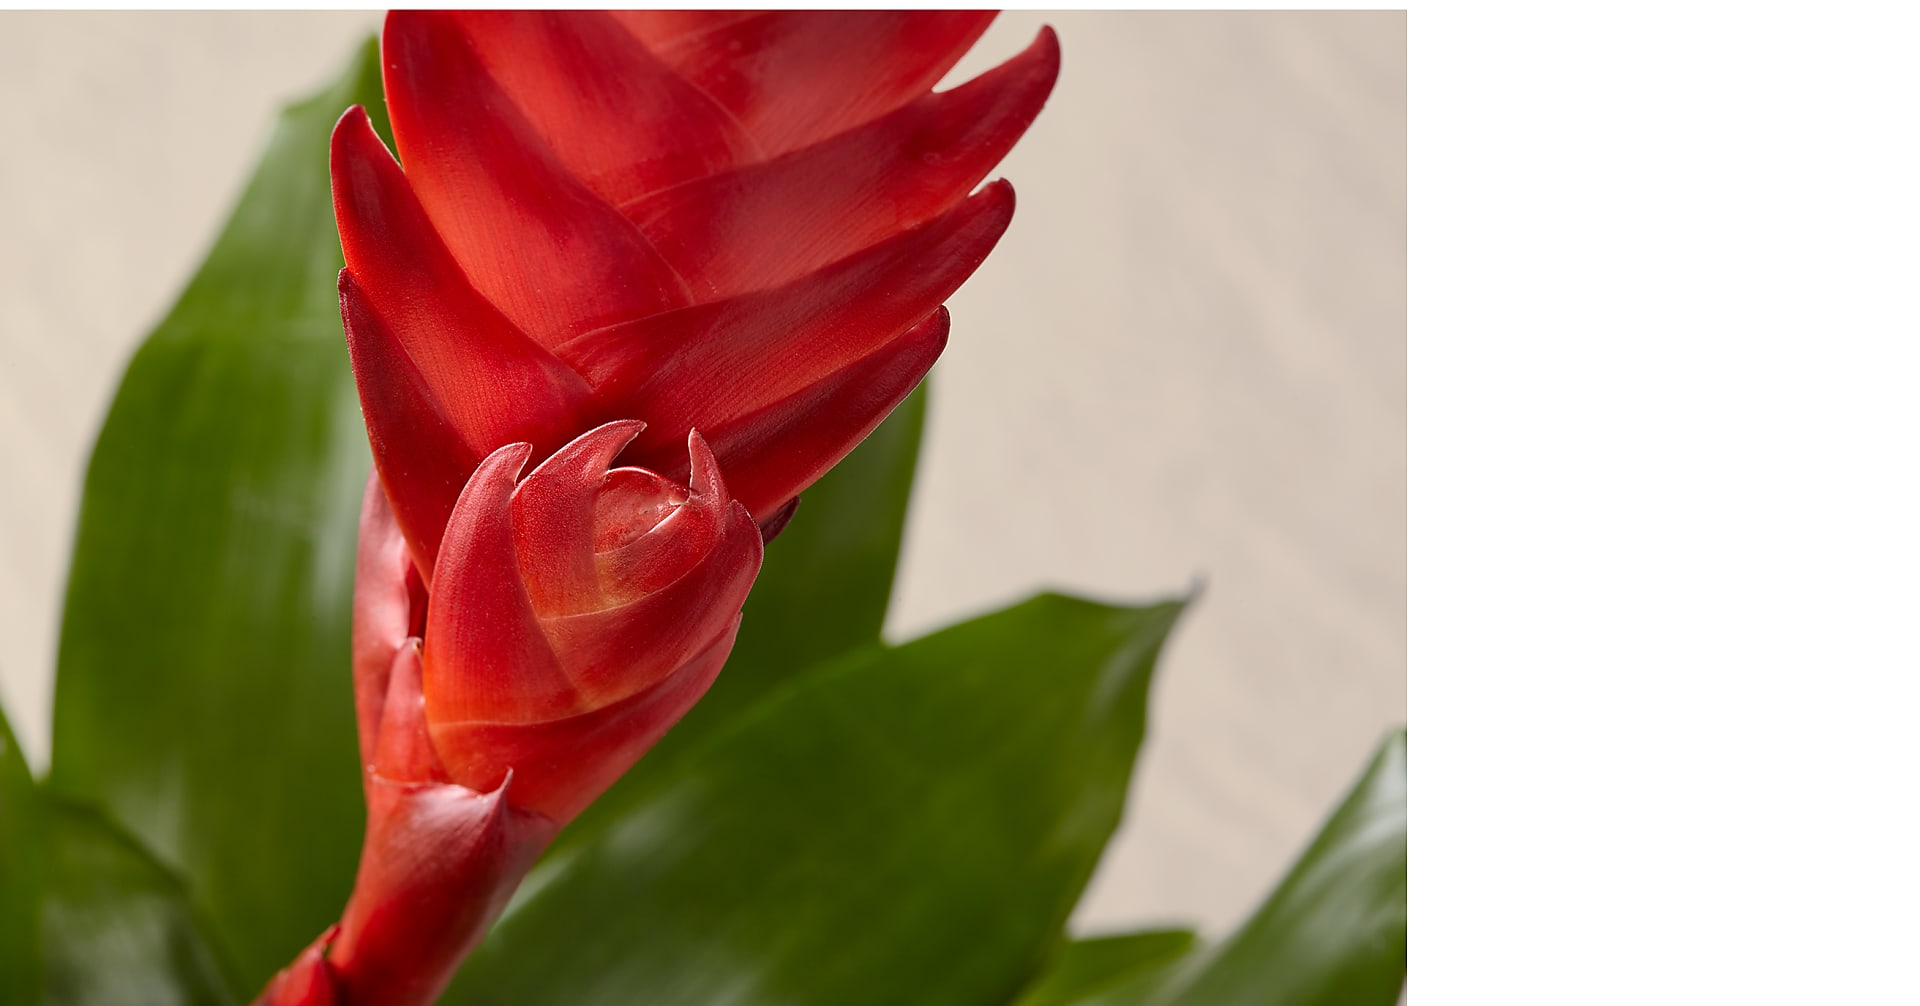 Red Bromeliad - Image 2 Of 3